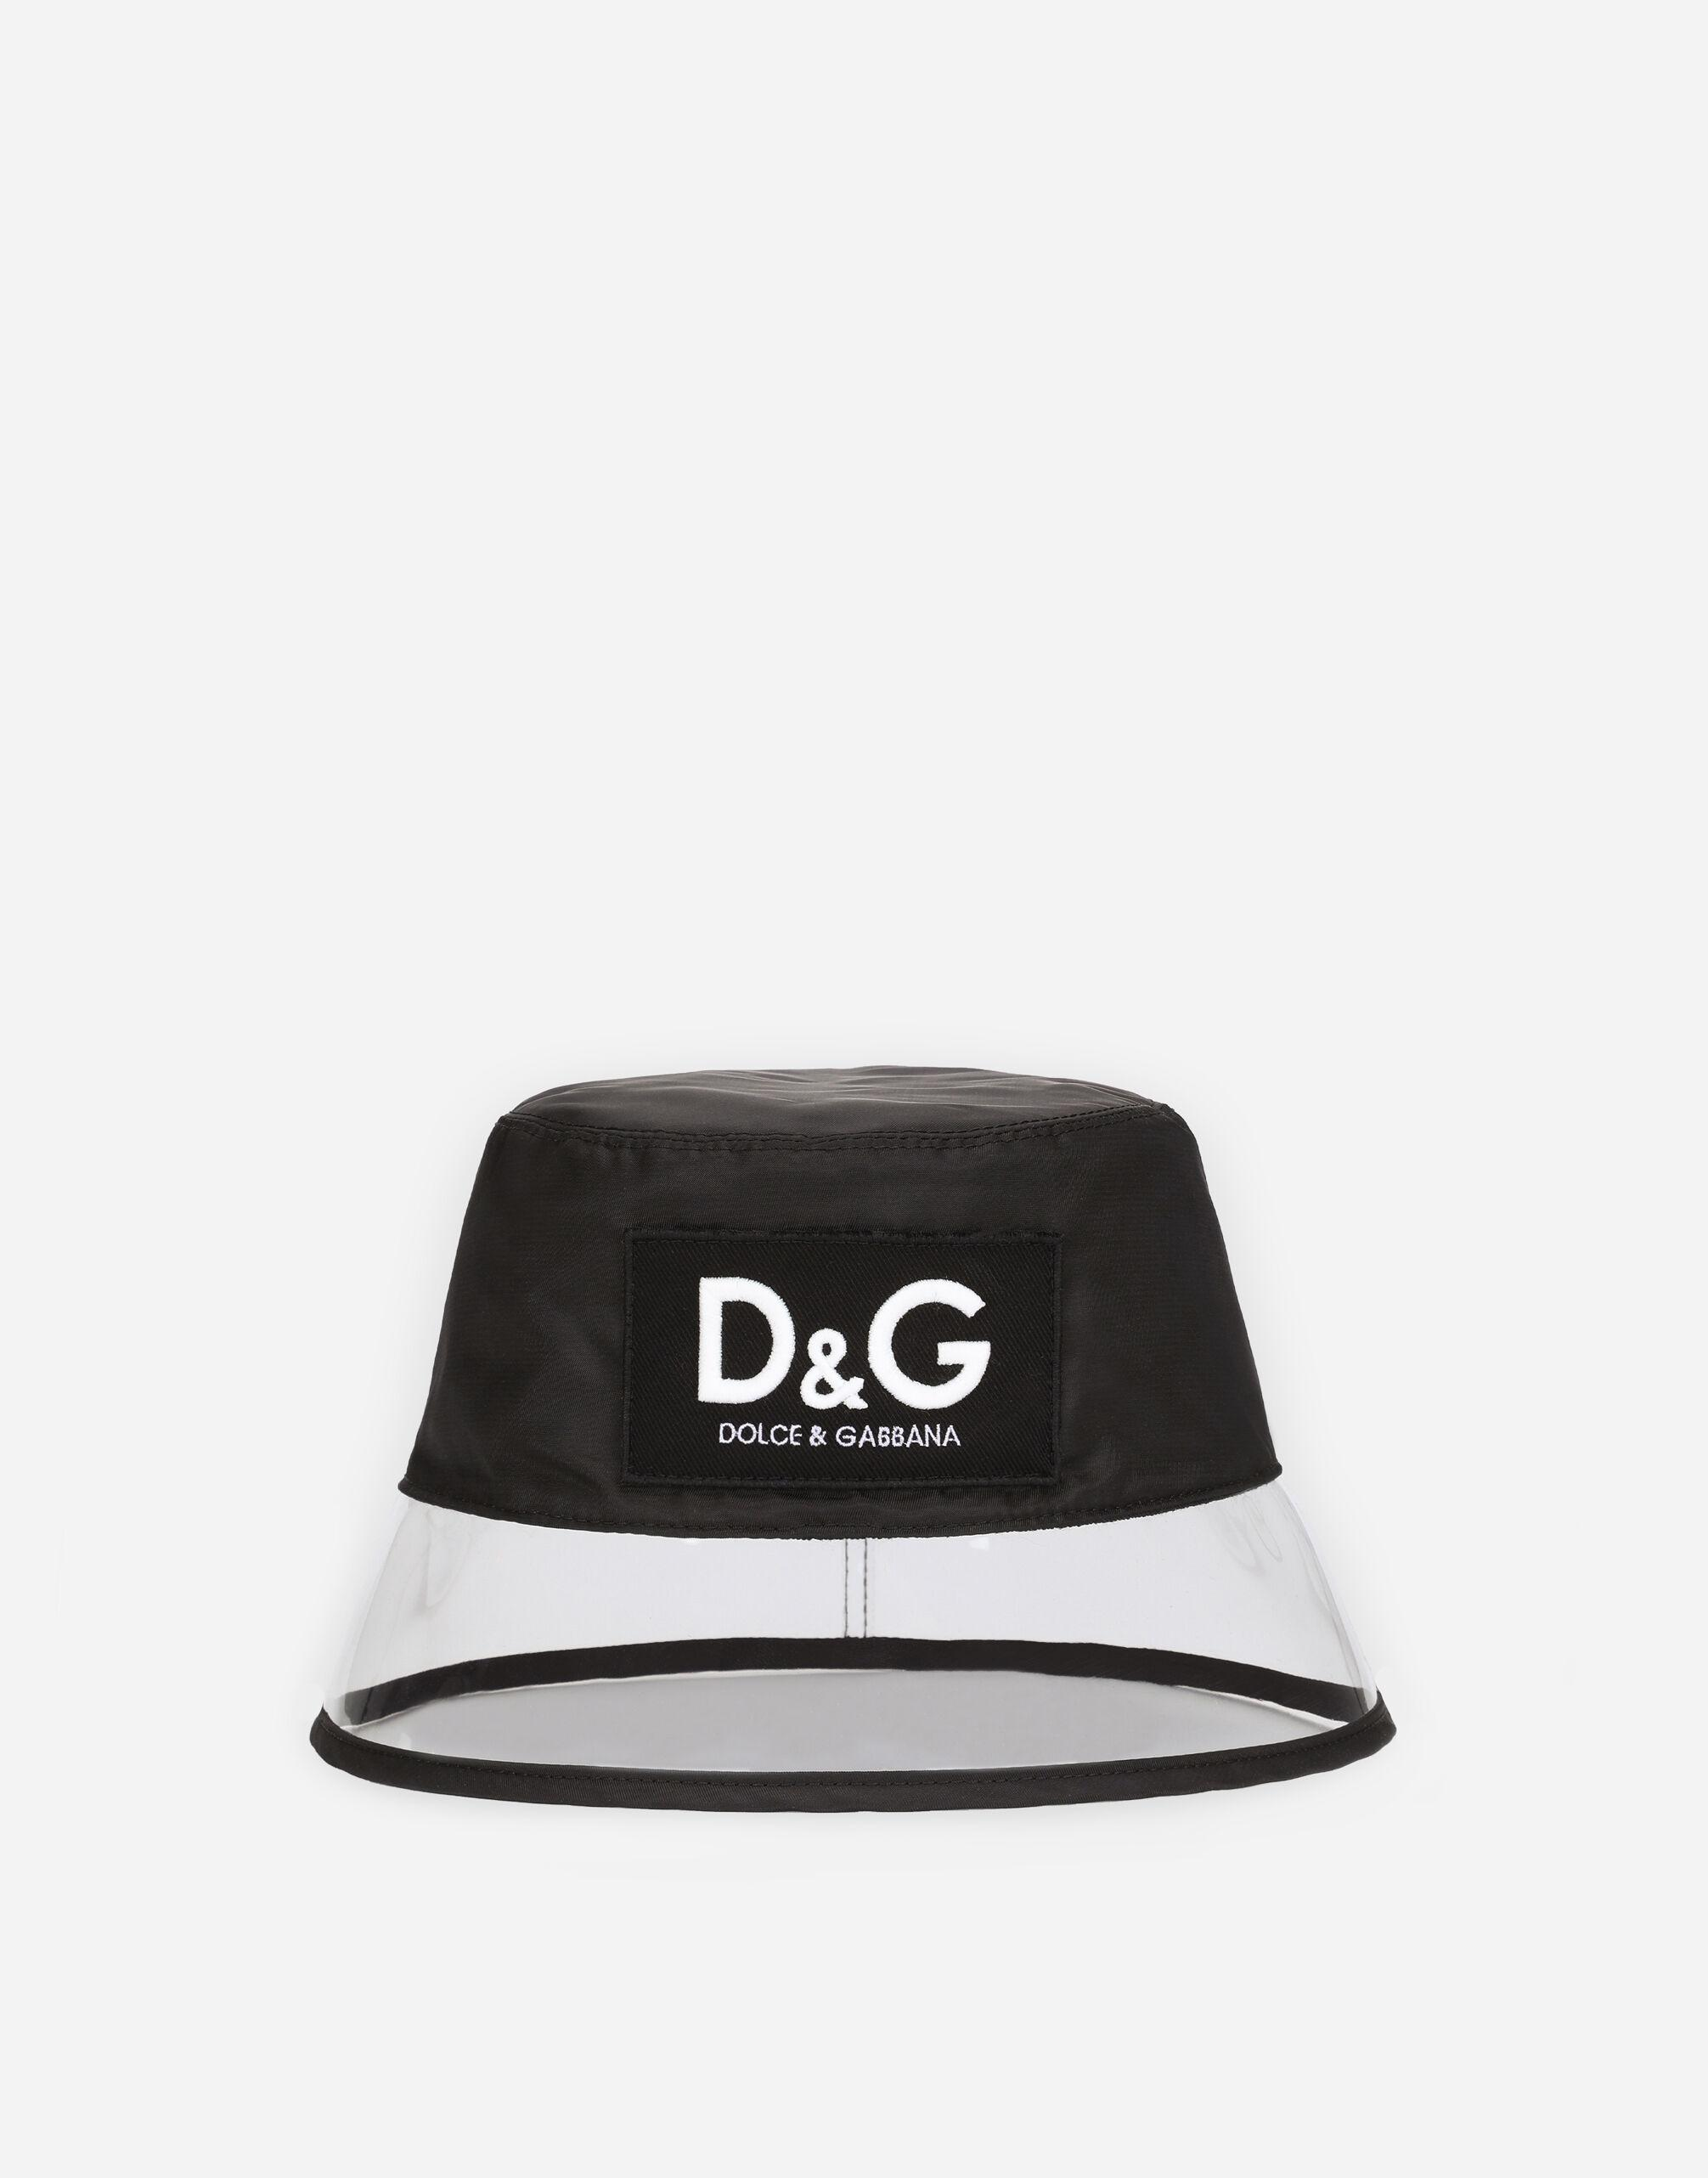 Nylon bucket hat with D&G patch